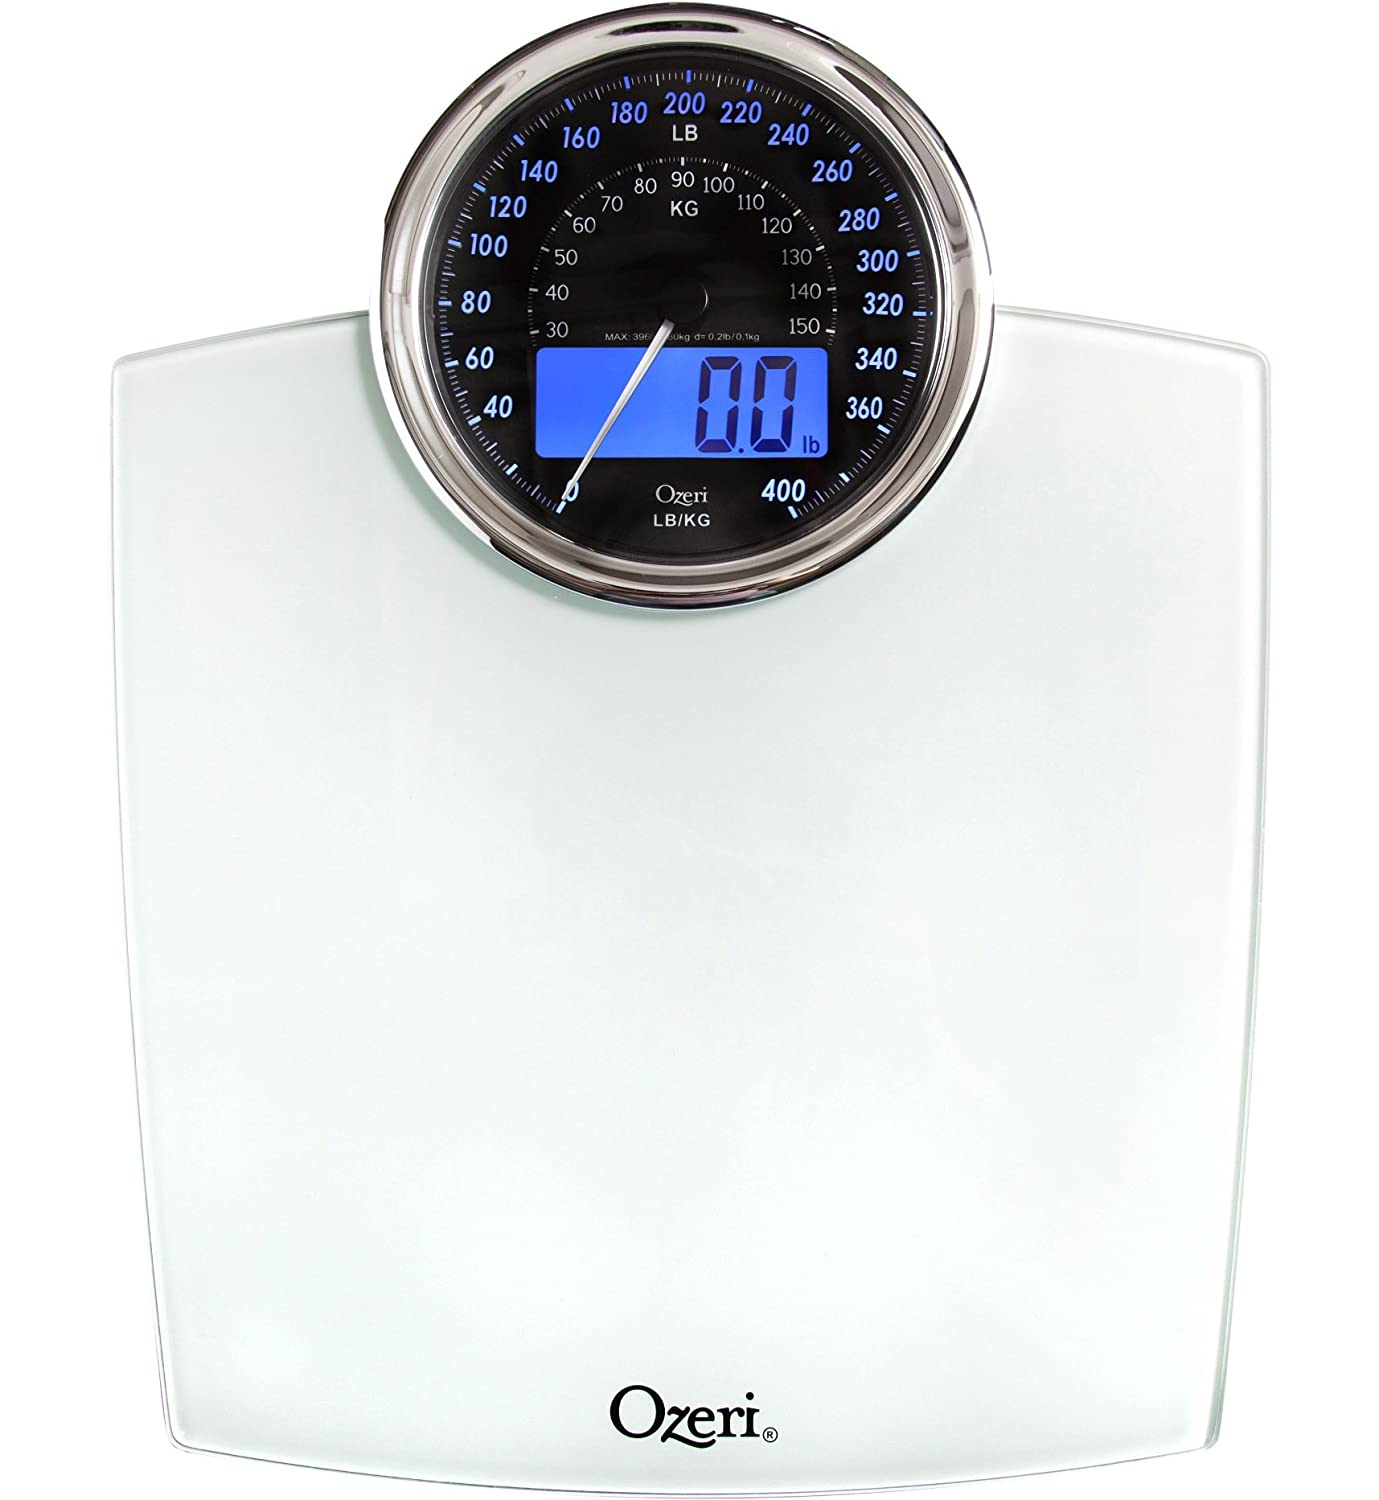 Amazon scale bathroom - Amazon Com Ozeri Zb19 W Rev Digital Bathroom Scale With Electro Mechanical Weight Dial White Health Personal Care